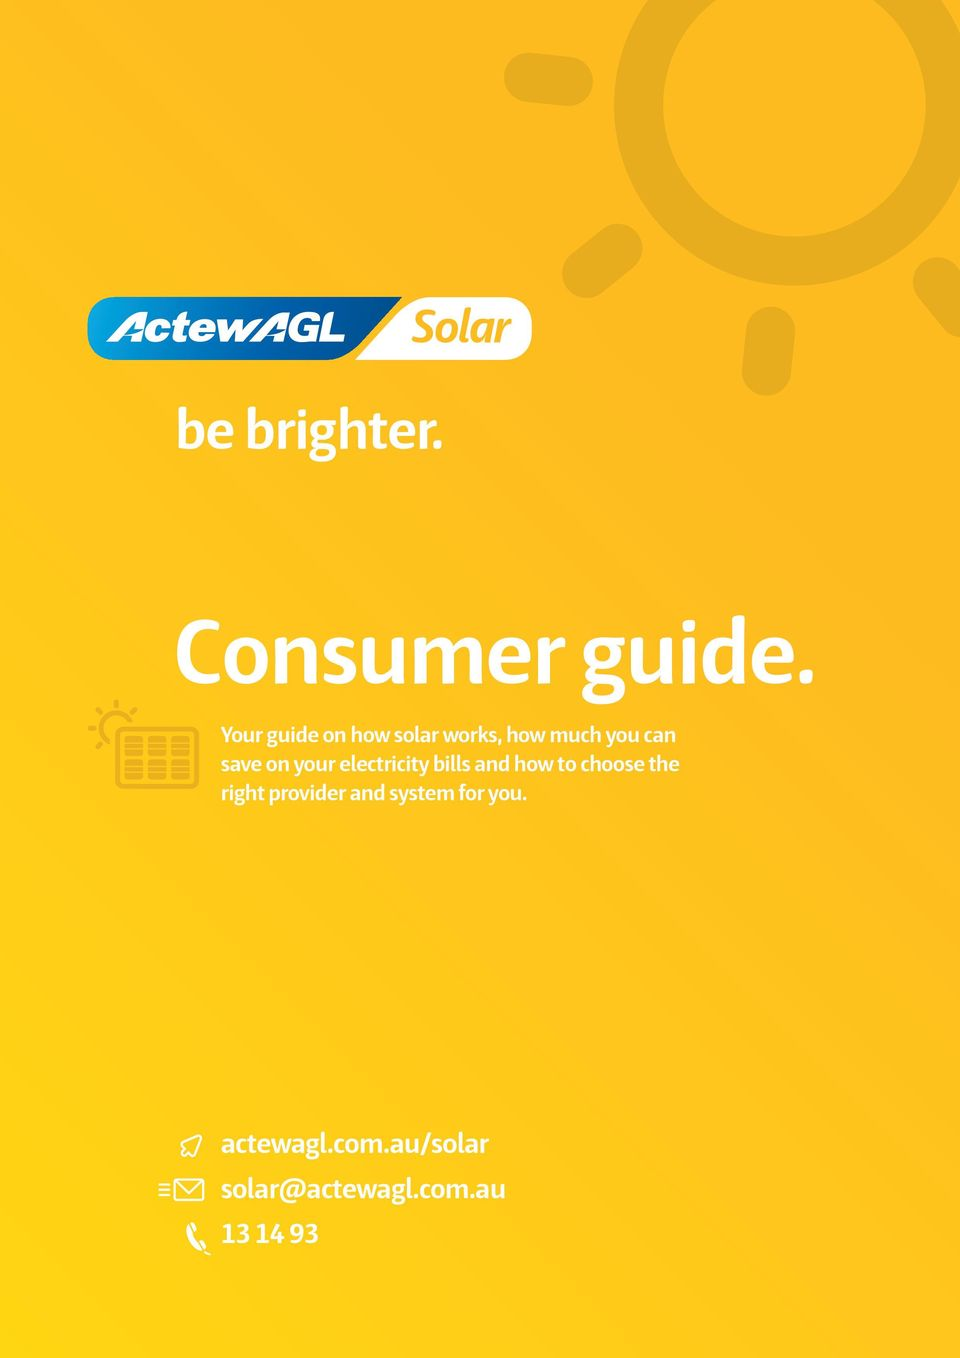 on your electricity bills and how to choose the right